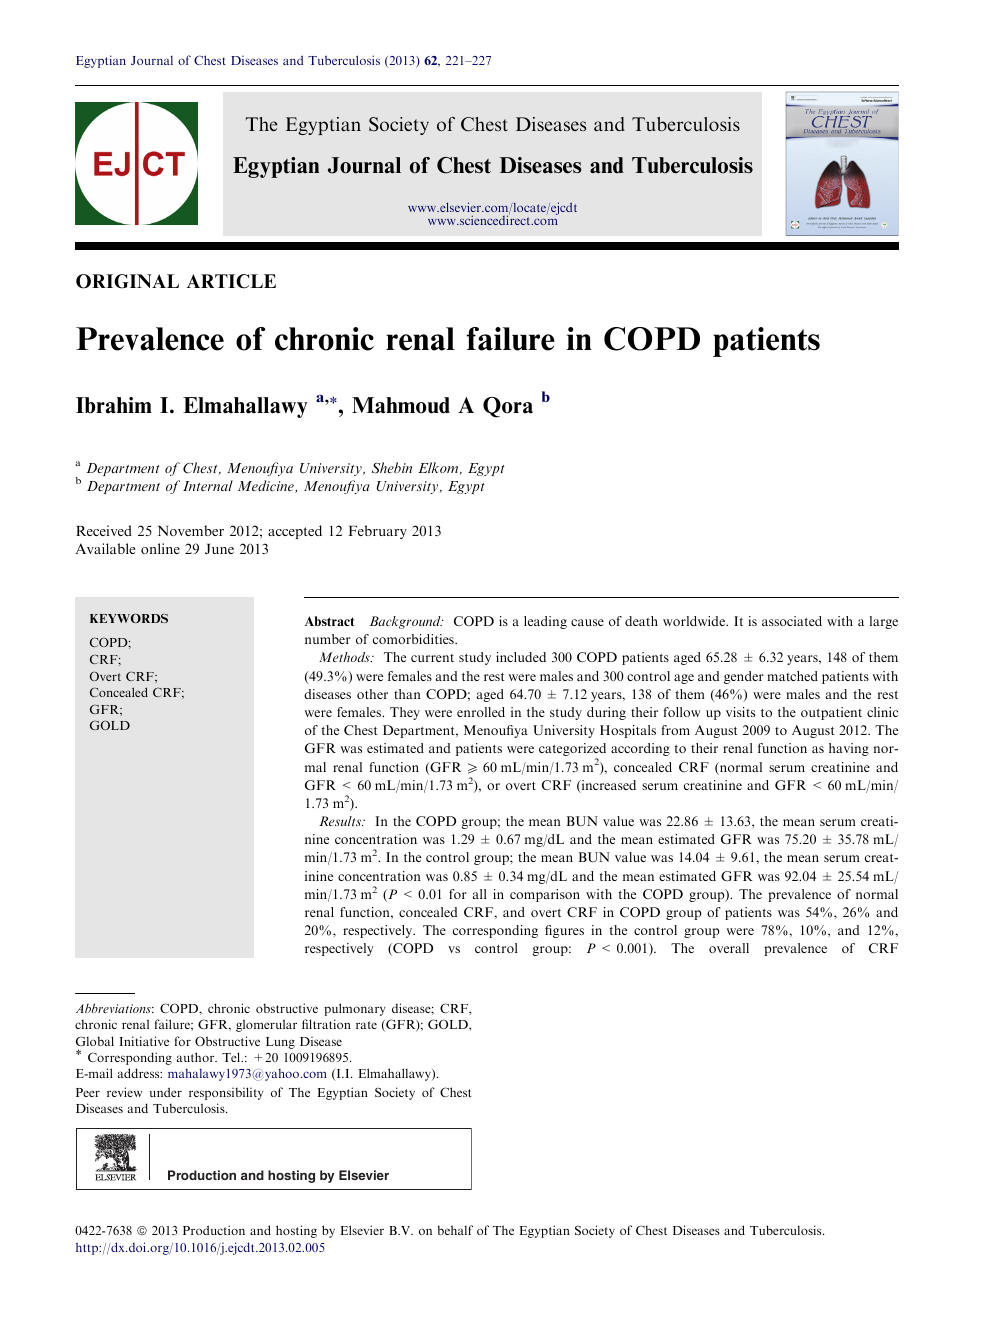 Prevalence of chronic renal failure in COPD patients – topic